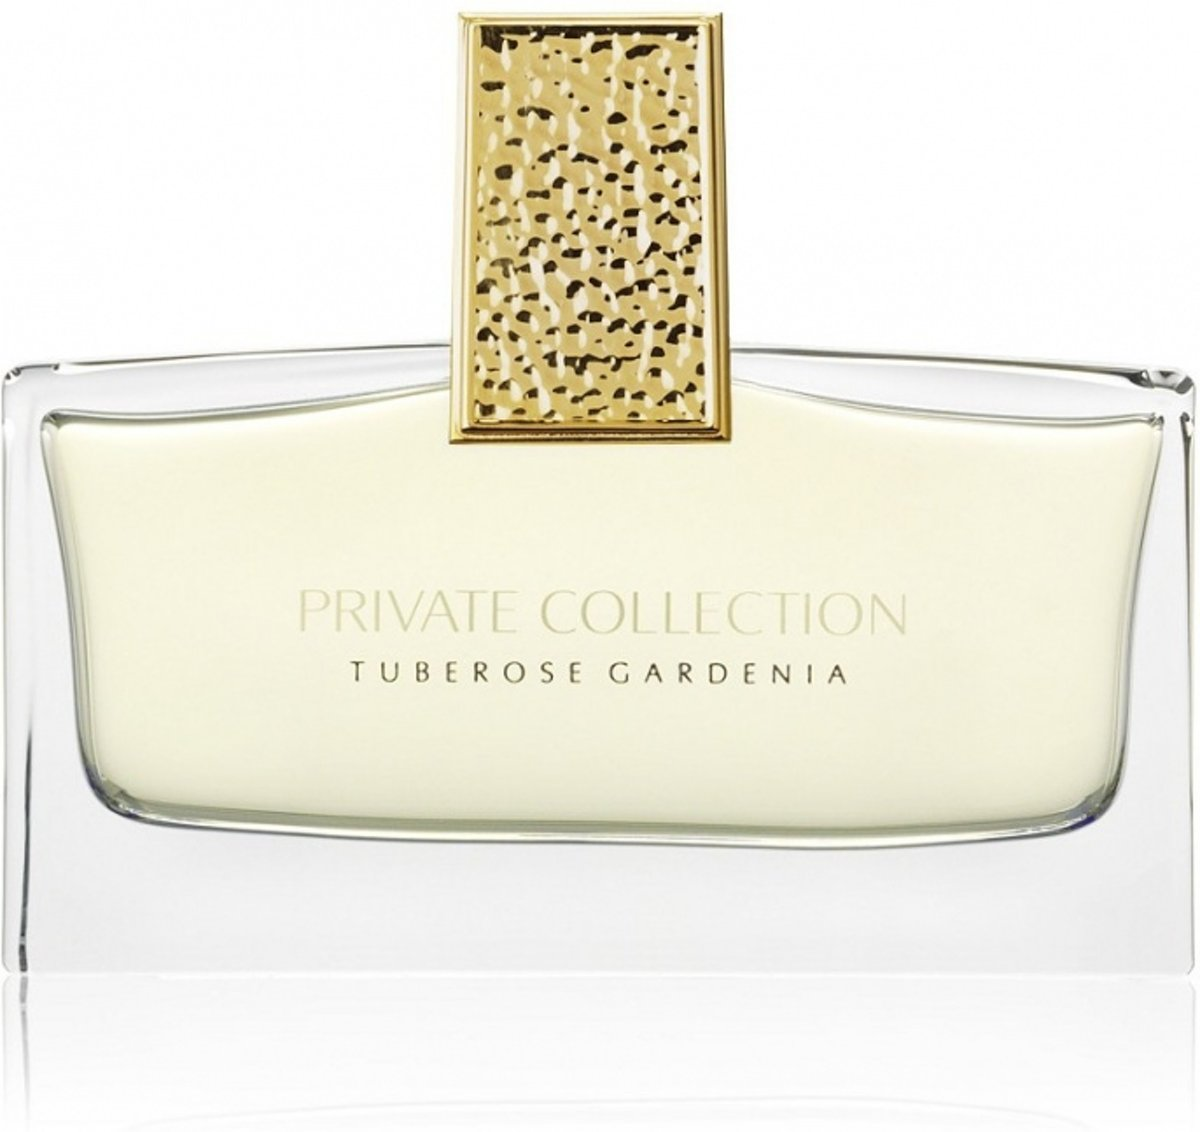 Estée Lauder Private Collection Tuberose Gardenia Eau de Parfum Spray 30 ml